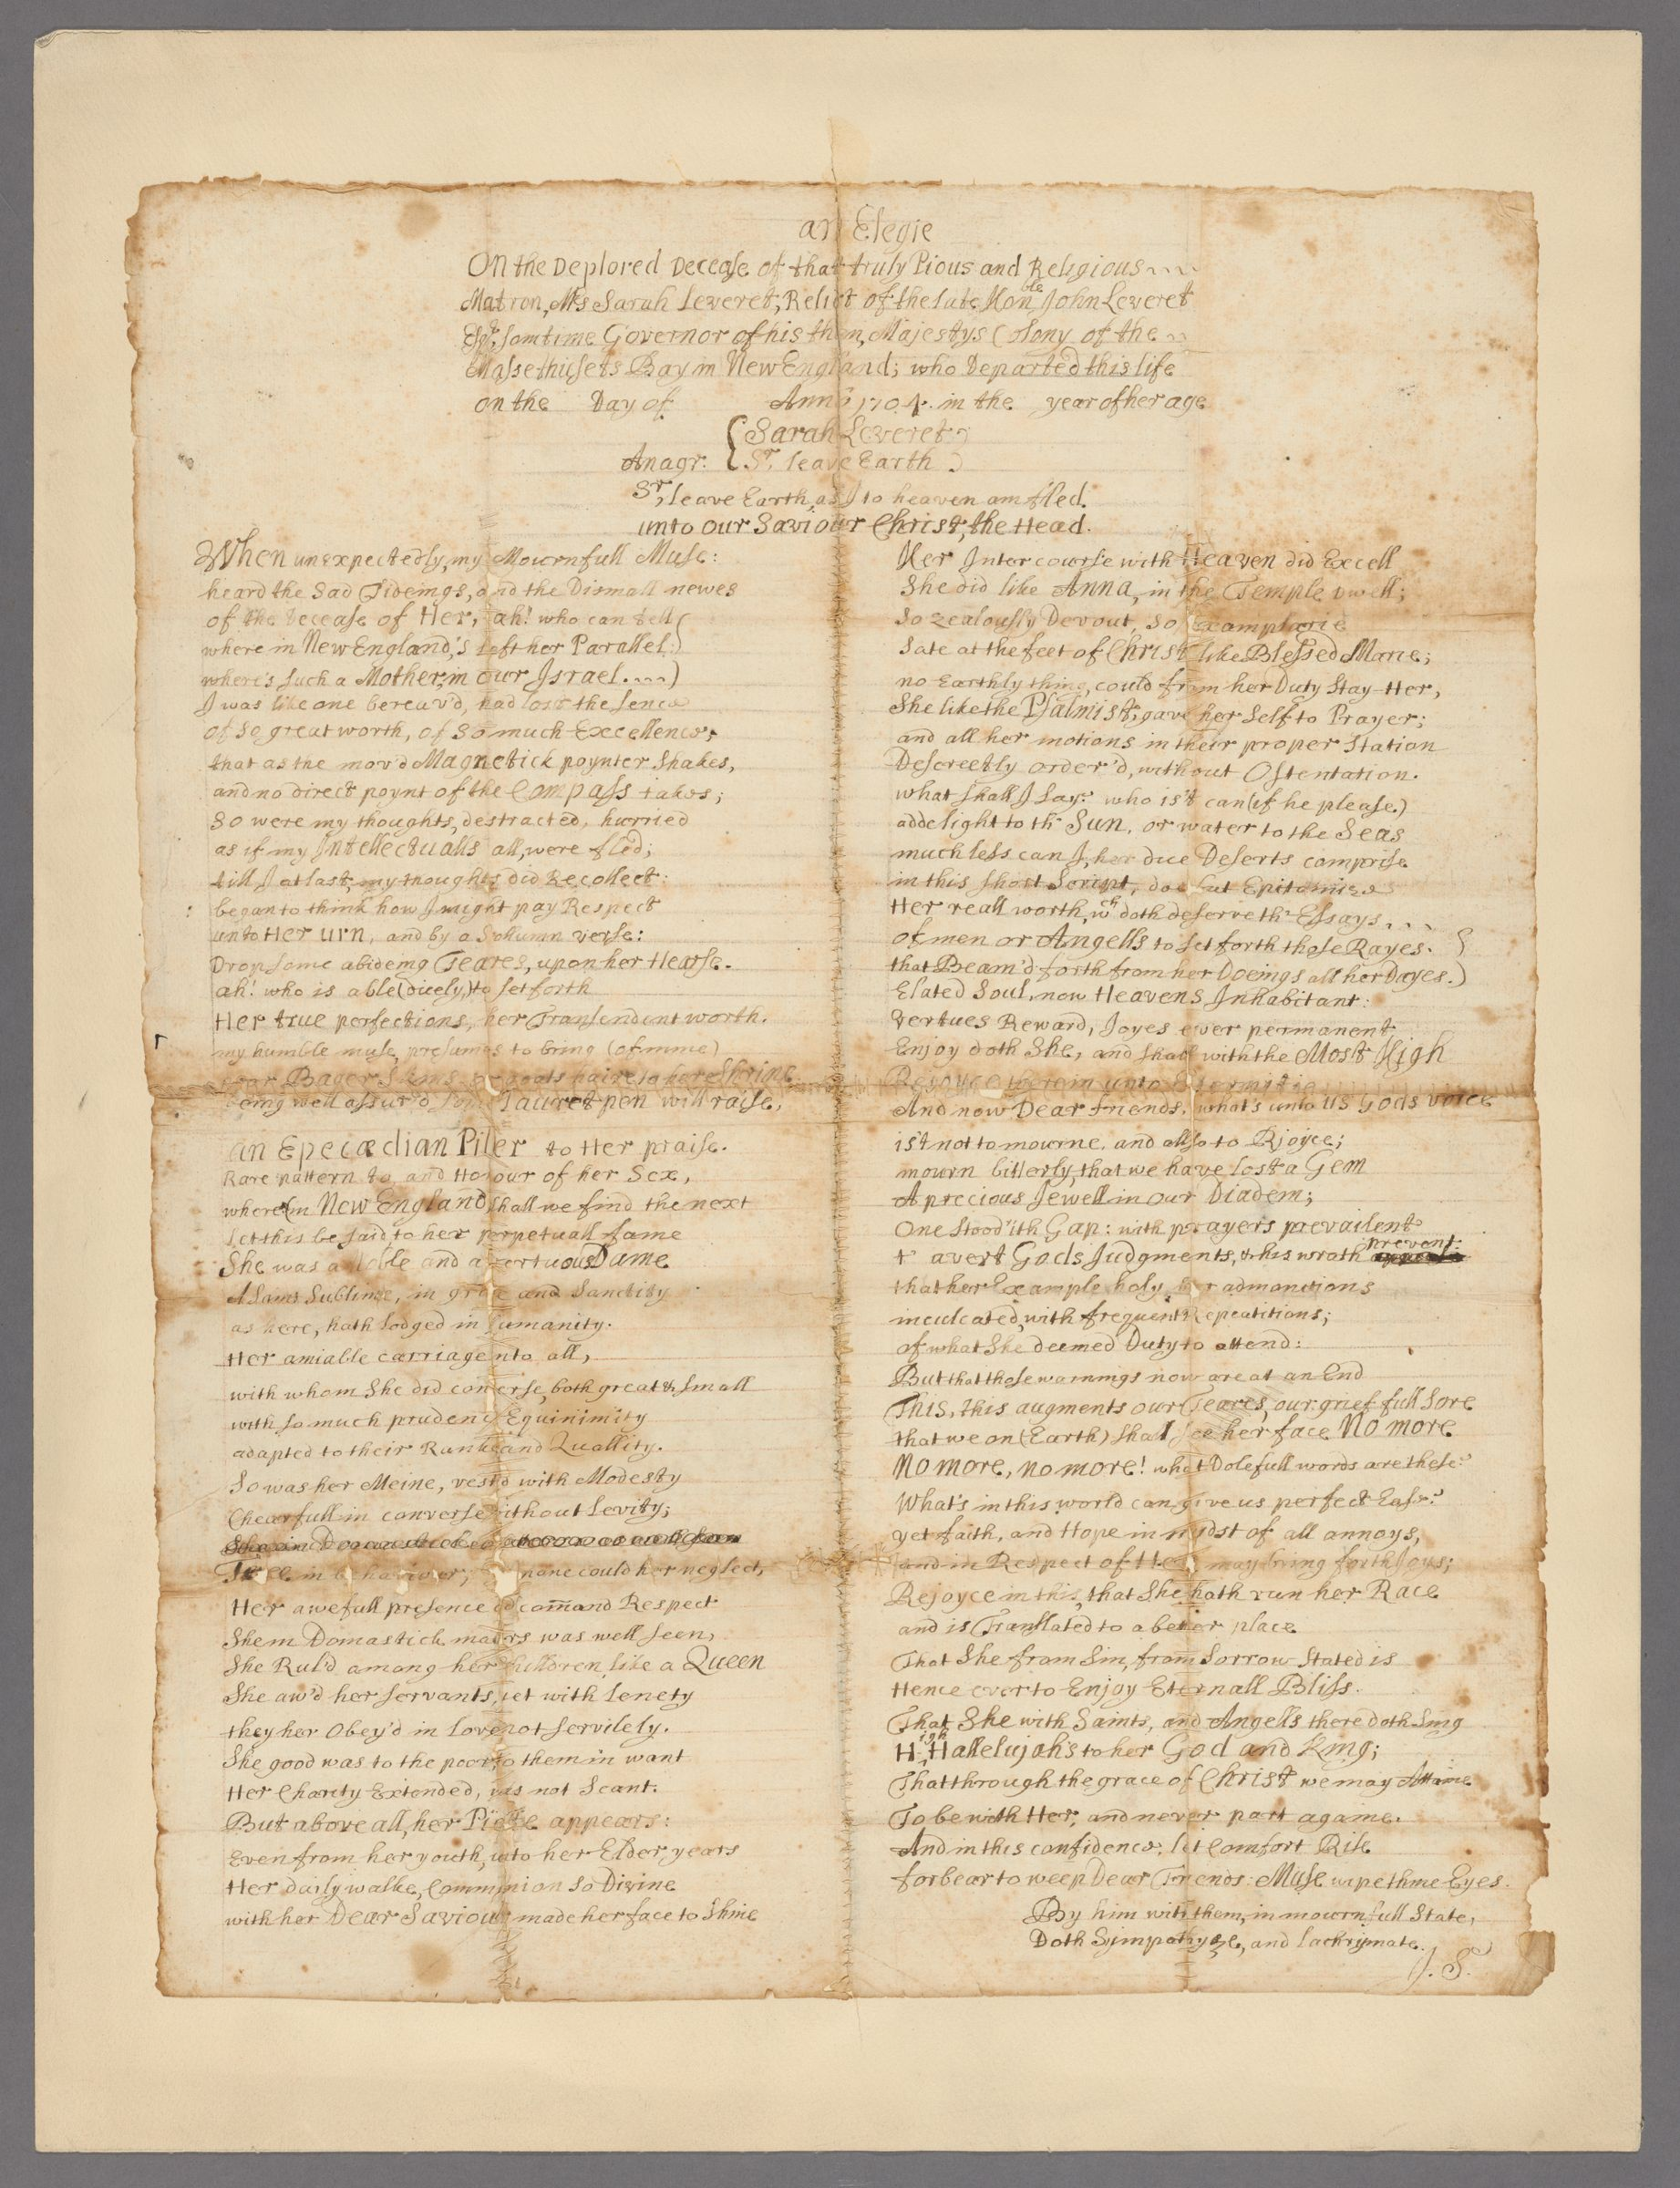 An  elegie on the deplored decease of that truly pious and religious matron, Mrs. Sara Leveret: relict of the late hon[or]able John Leveret, Esq., sometime governor of his then Majesty's colony of the Massethusets [sic] Bay in New England : manuscript, 1704